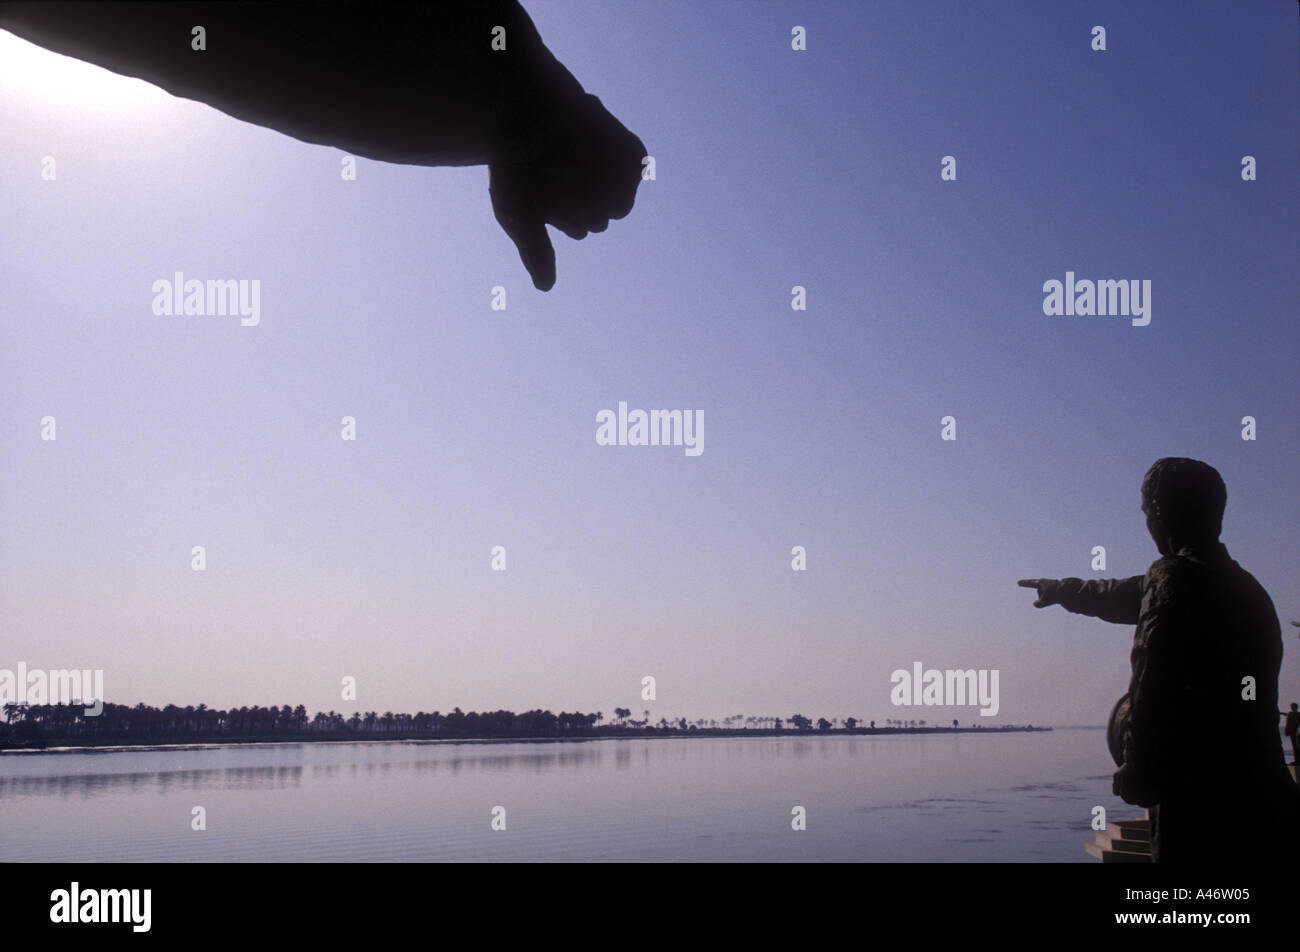 statues commemorating the fallen of the iran iraq war point an accusatory finger towards tehran - Stock Image